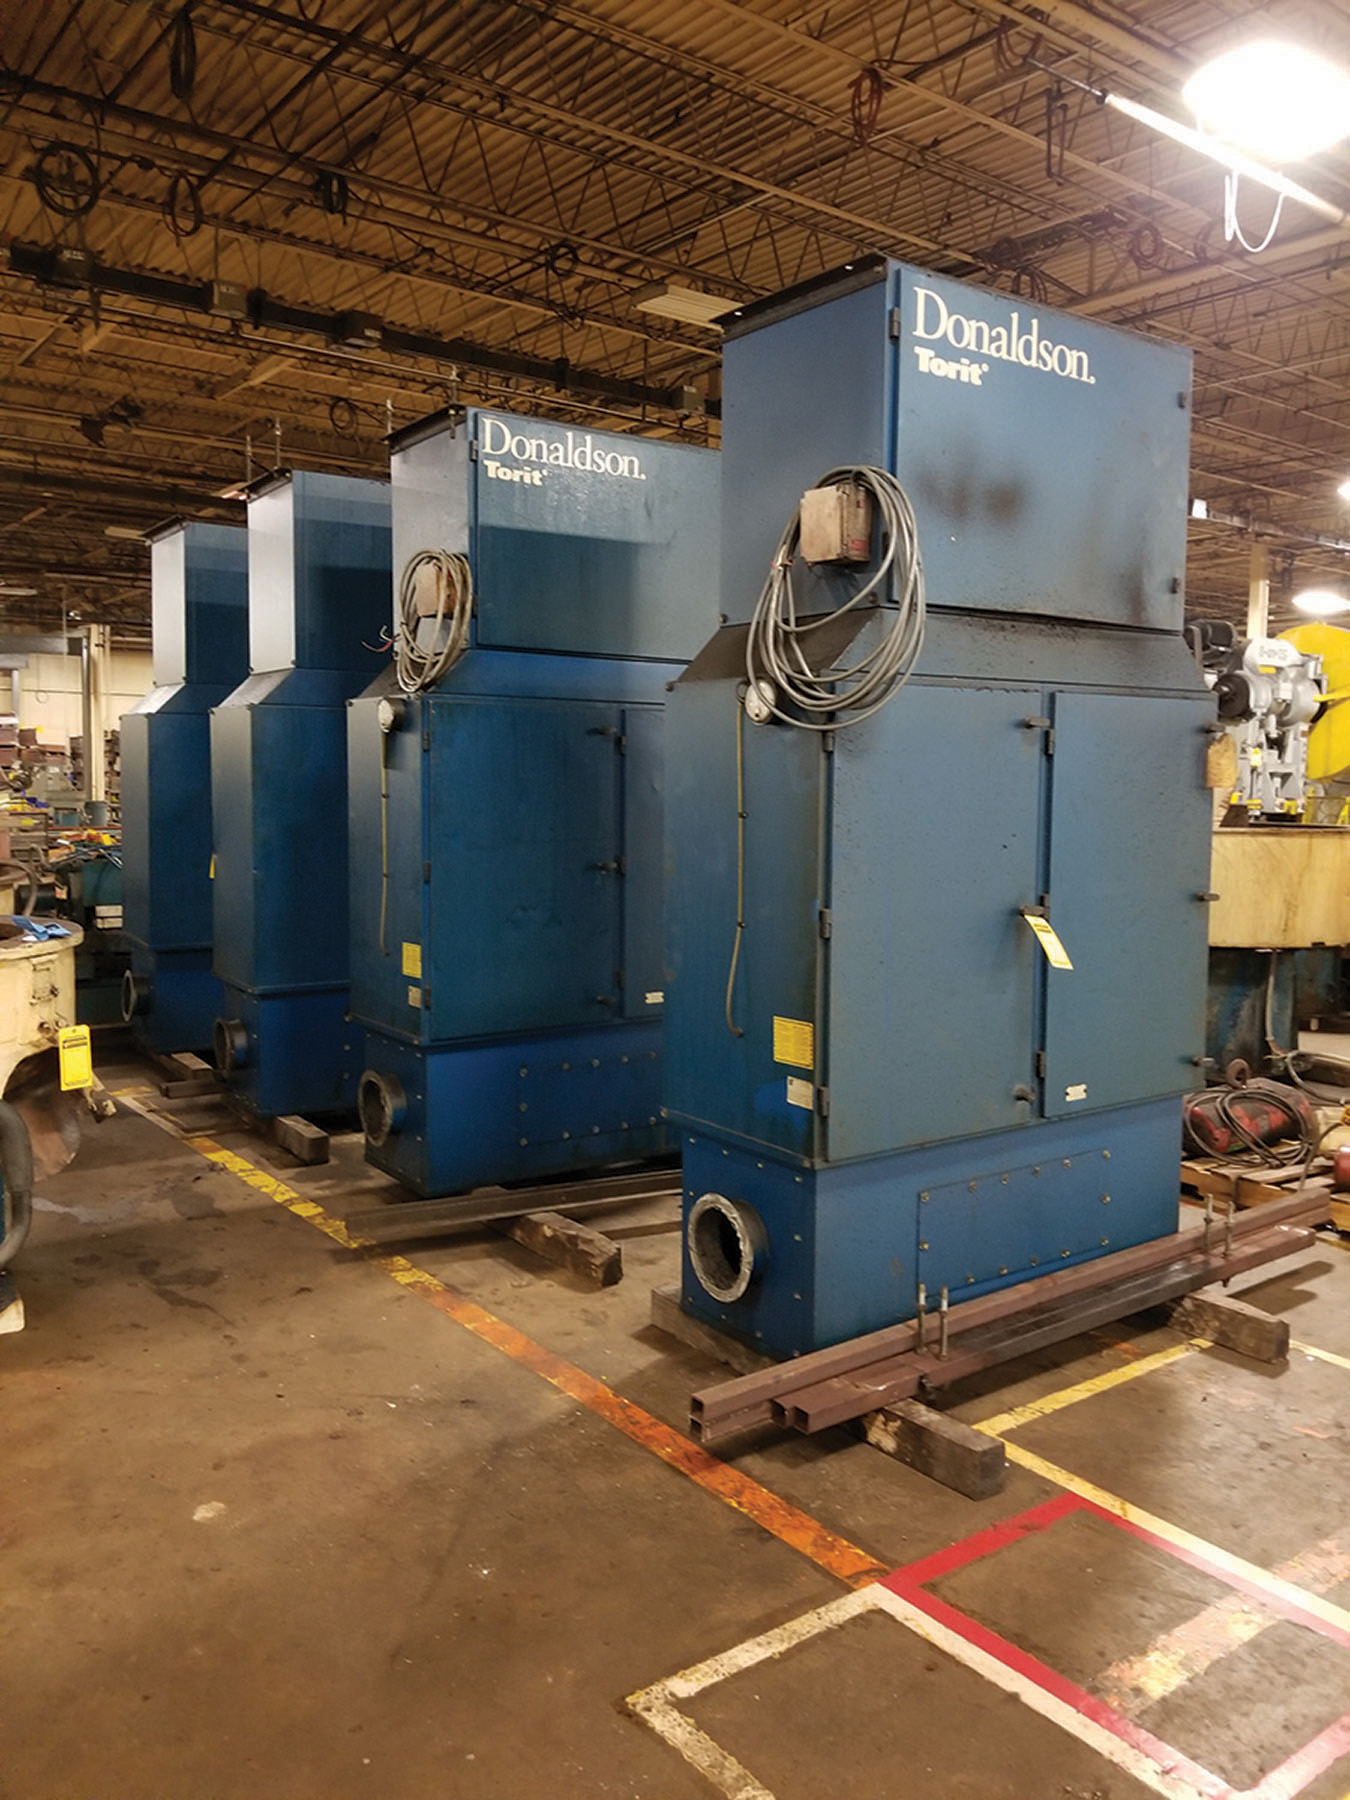 Lot 9 - DONALDSON TORIT MIST COLLECTOR - MODEL MDV- 6000, S/N IG736650, 3 1-HP, 60-CYCLE, 3,450-RPM ***$